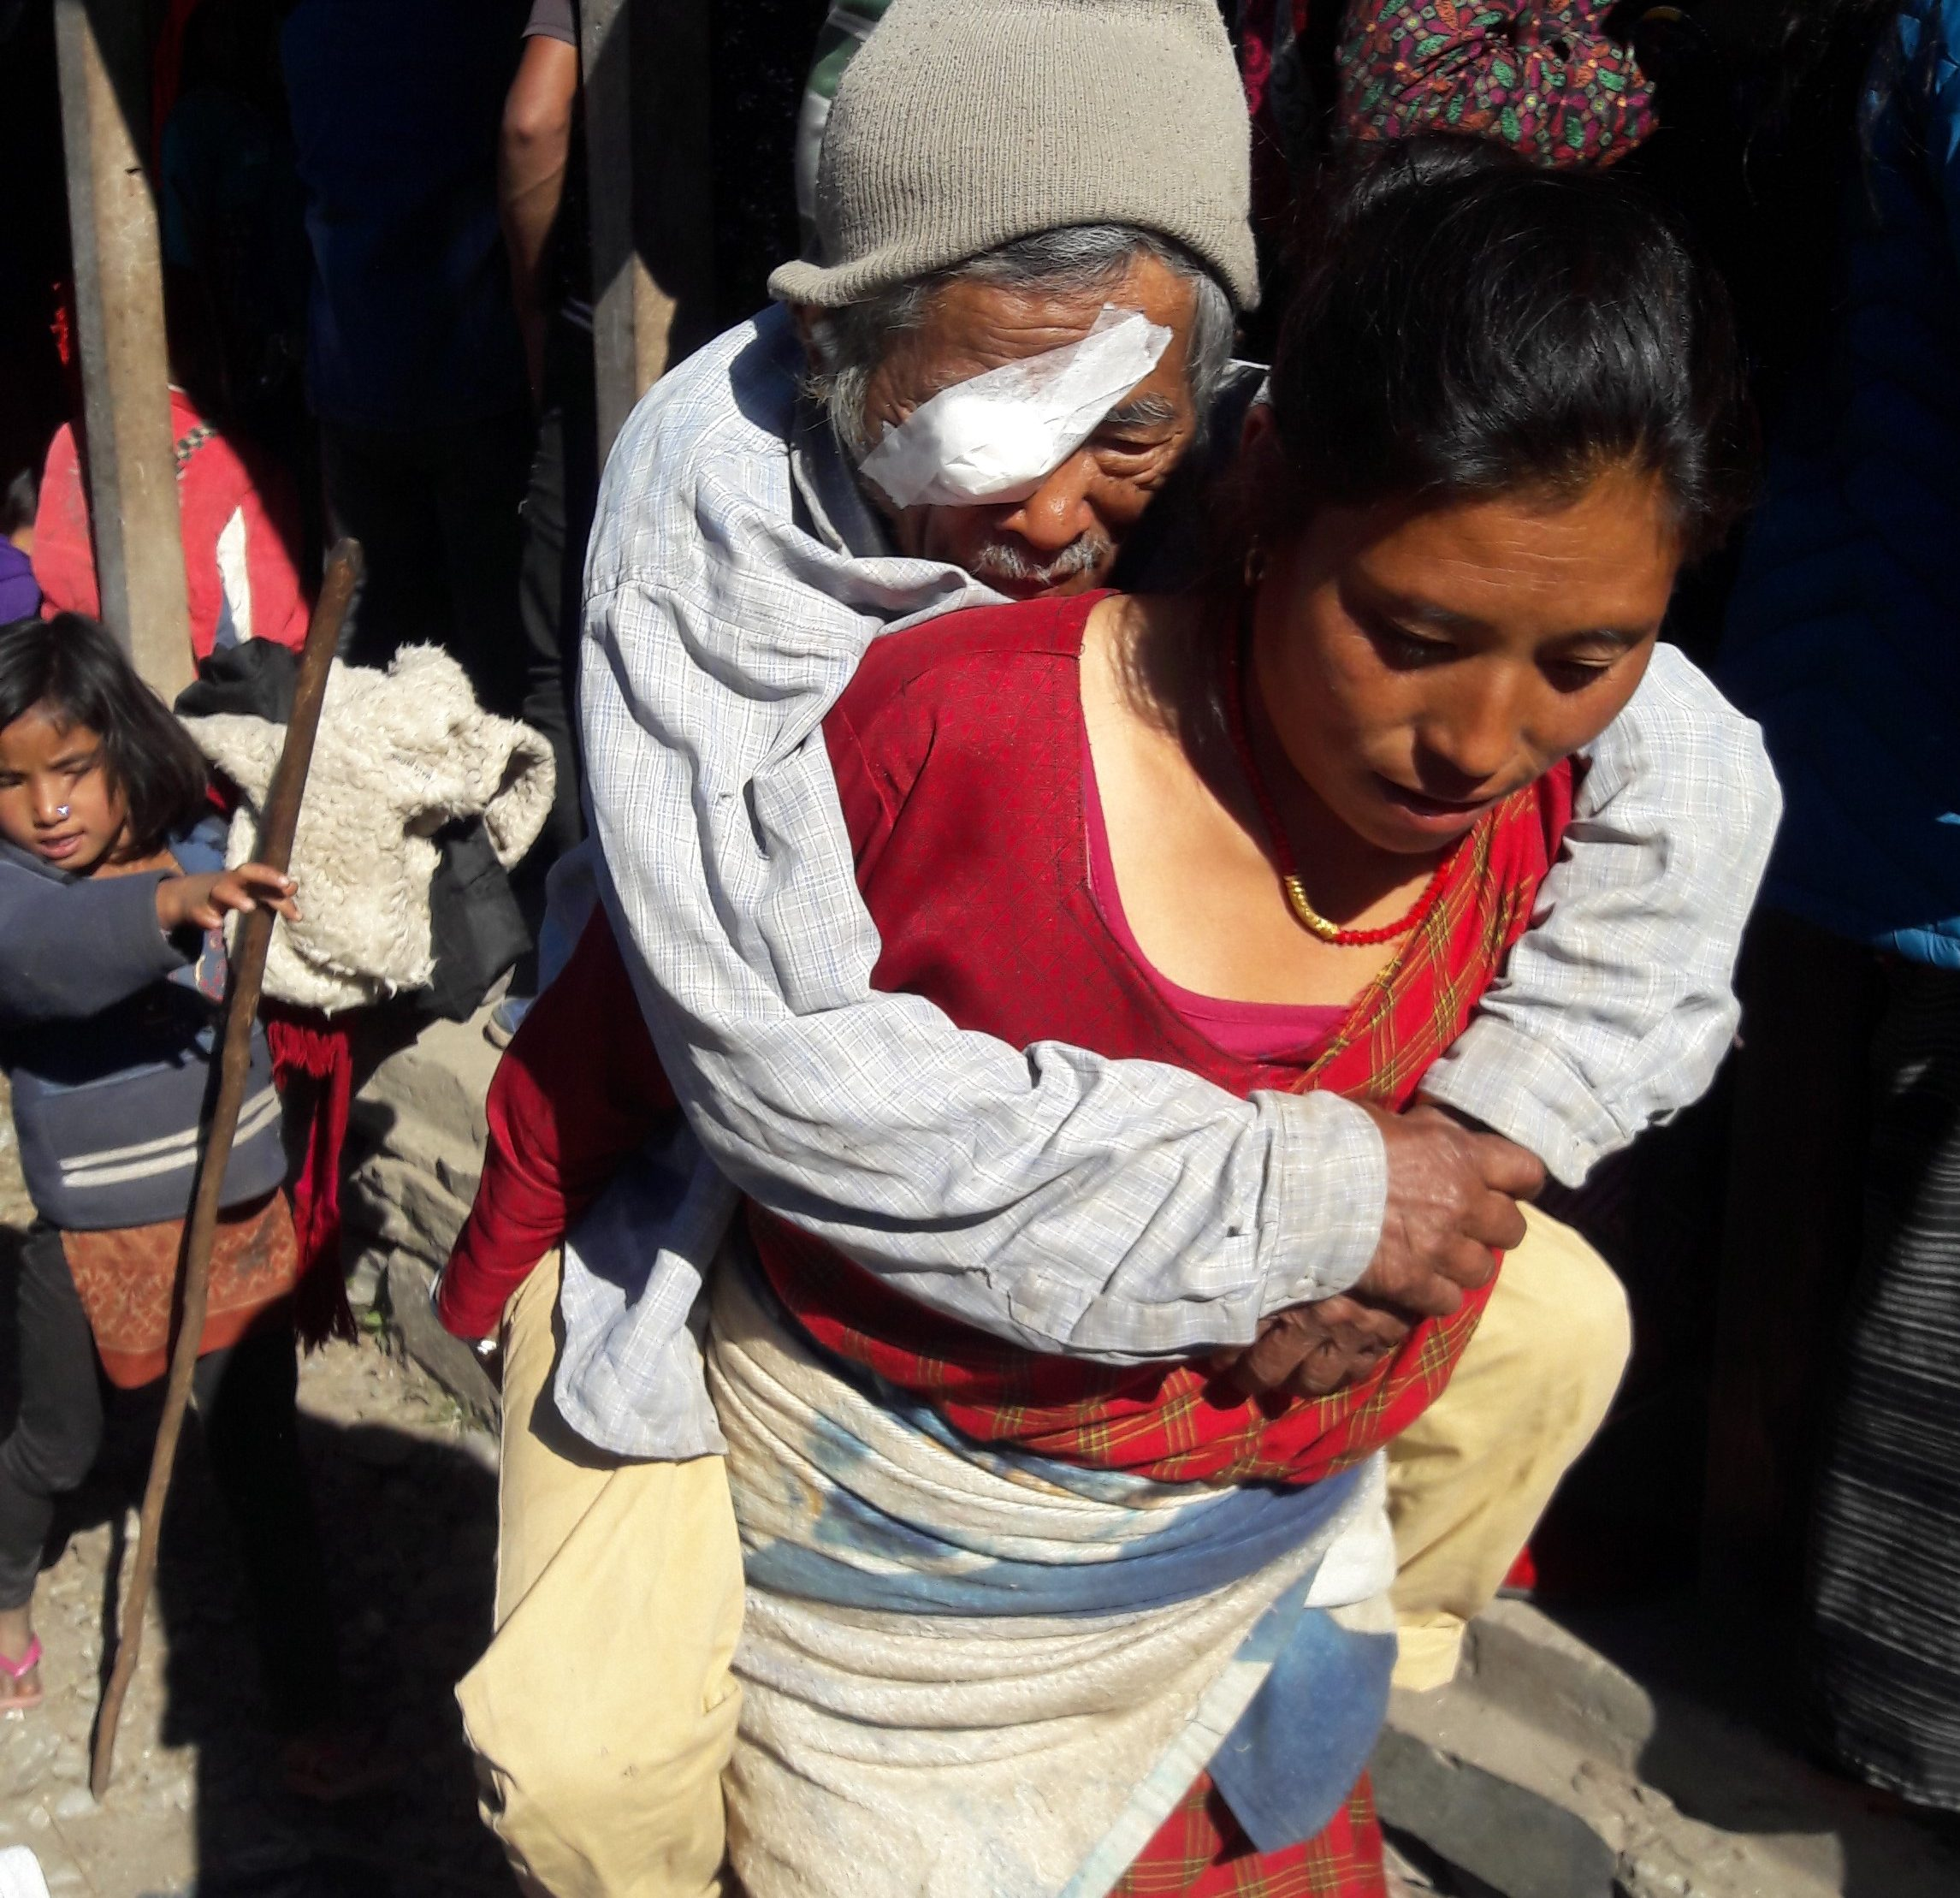 Access to care remains a hurdle for many in post-earthquake Nepal. This man was carried to care by his daughter-in-law, and the journey allowed him to receive cataract surgery, restoring his sight. (Direct Relief photo)